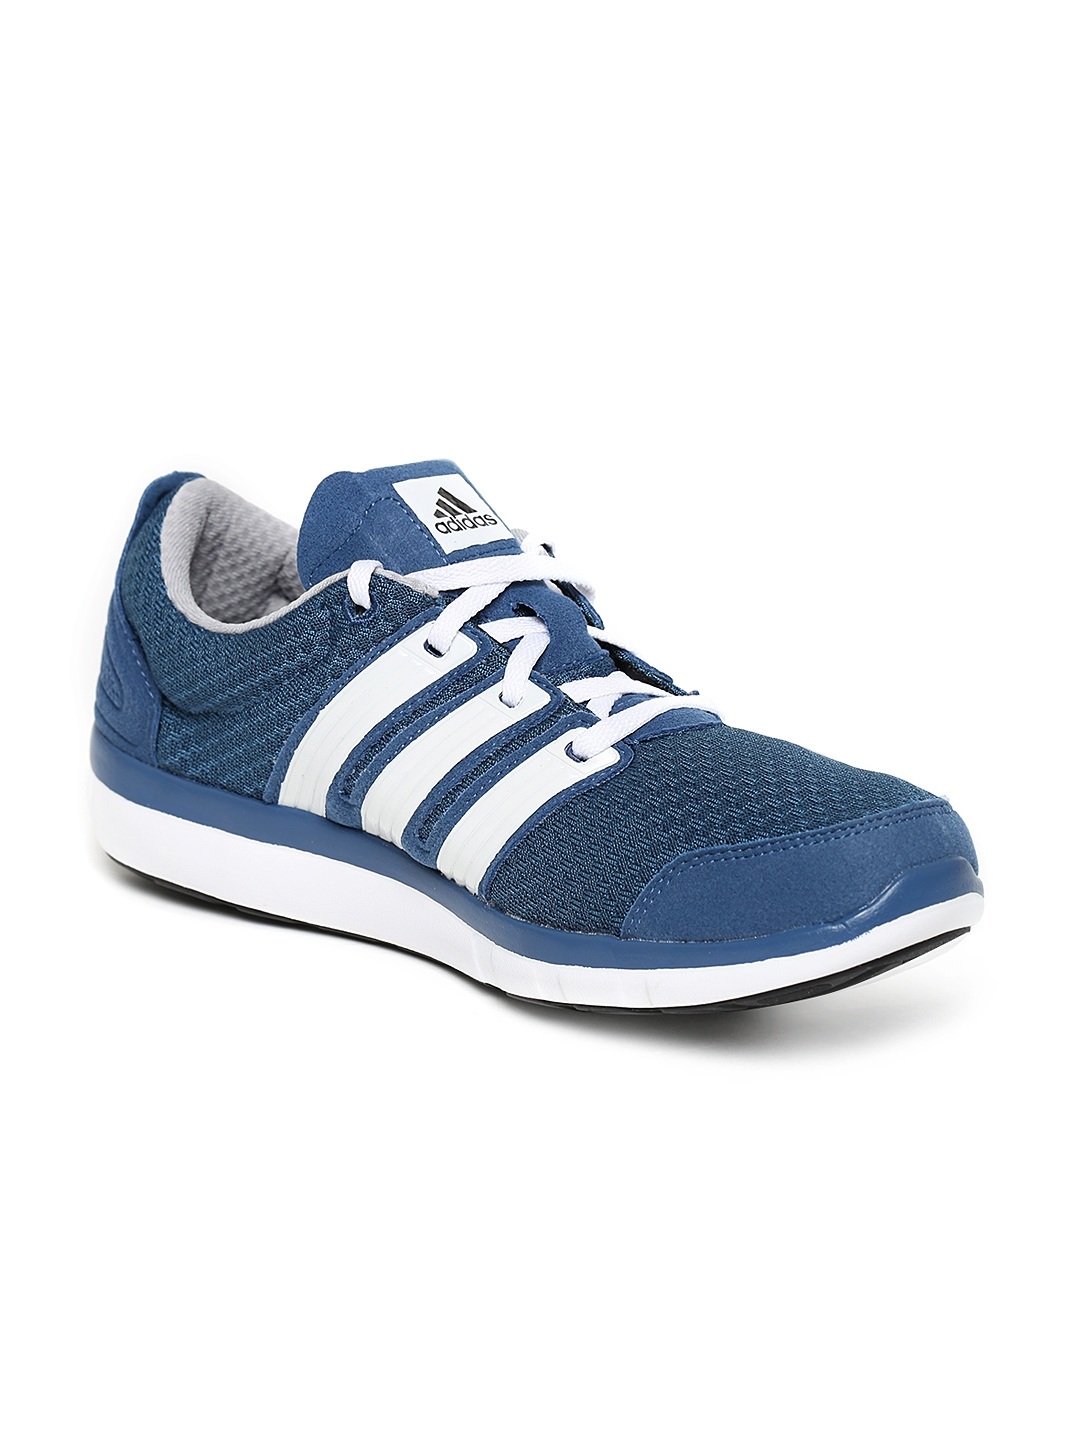 best service 1d539 a7f13 Buy ADIDAS Men Blue Element Soul 2 M Running Shoes - Sports Shoes for Men  420403  Myntra